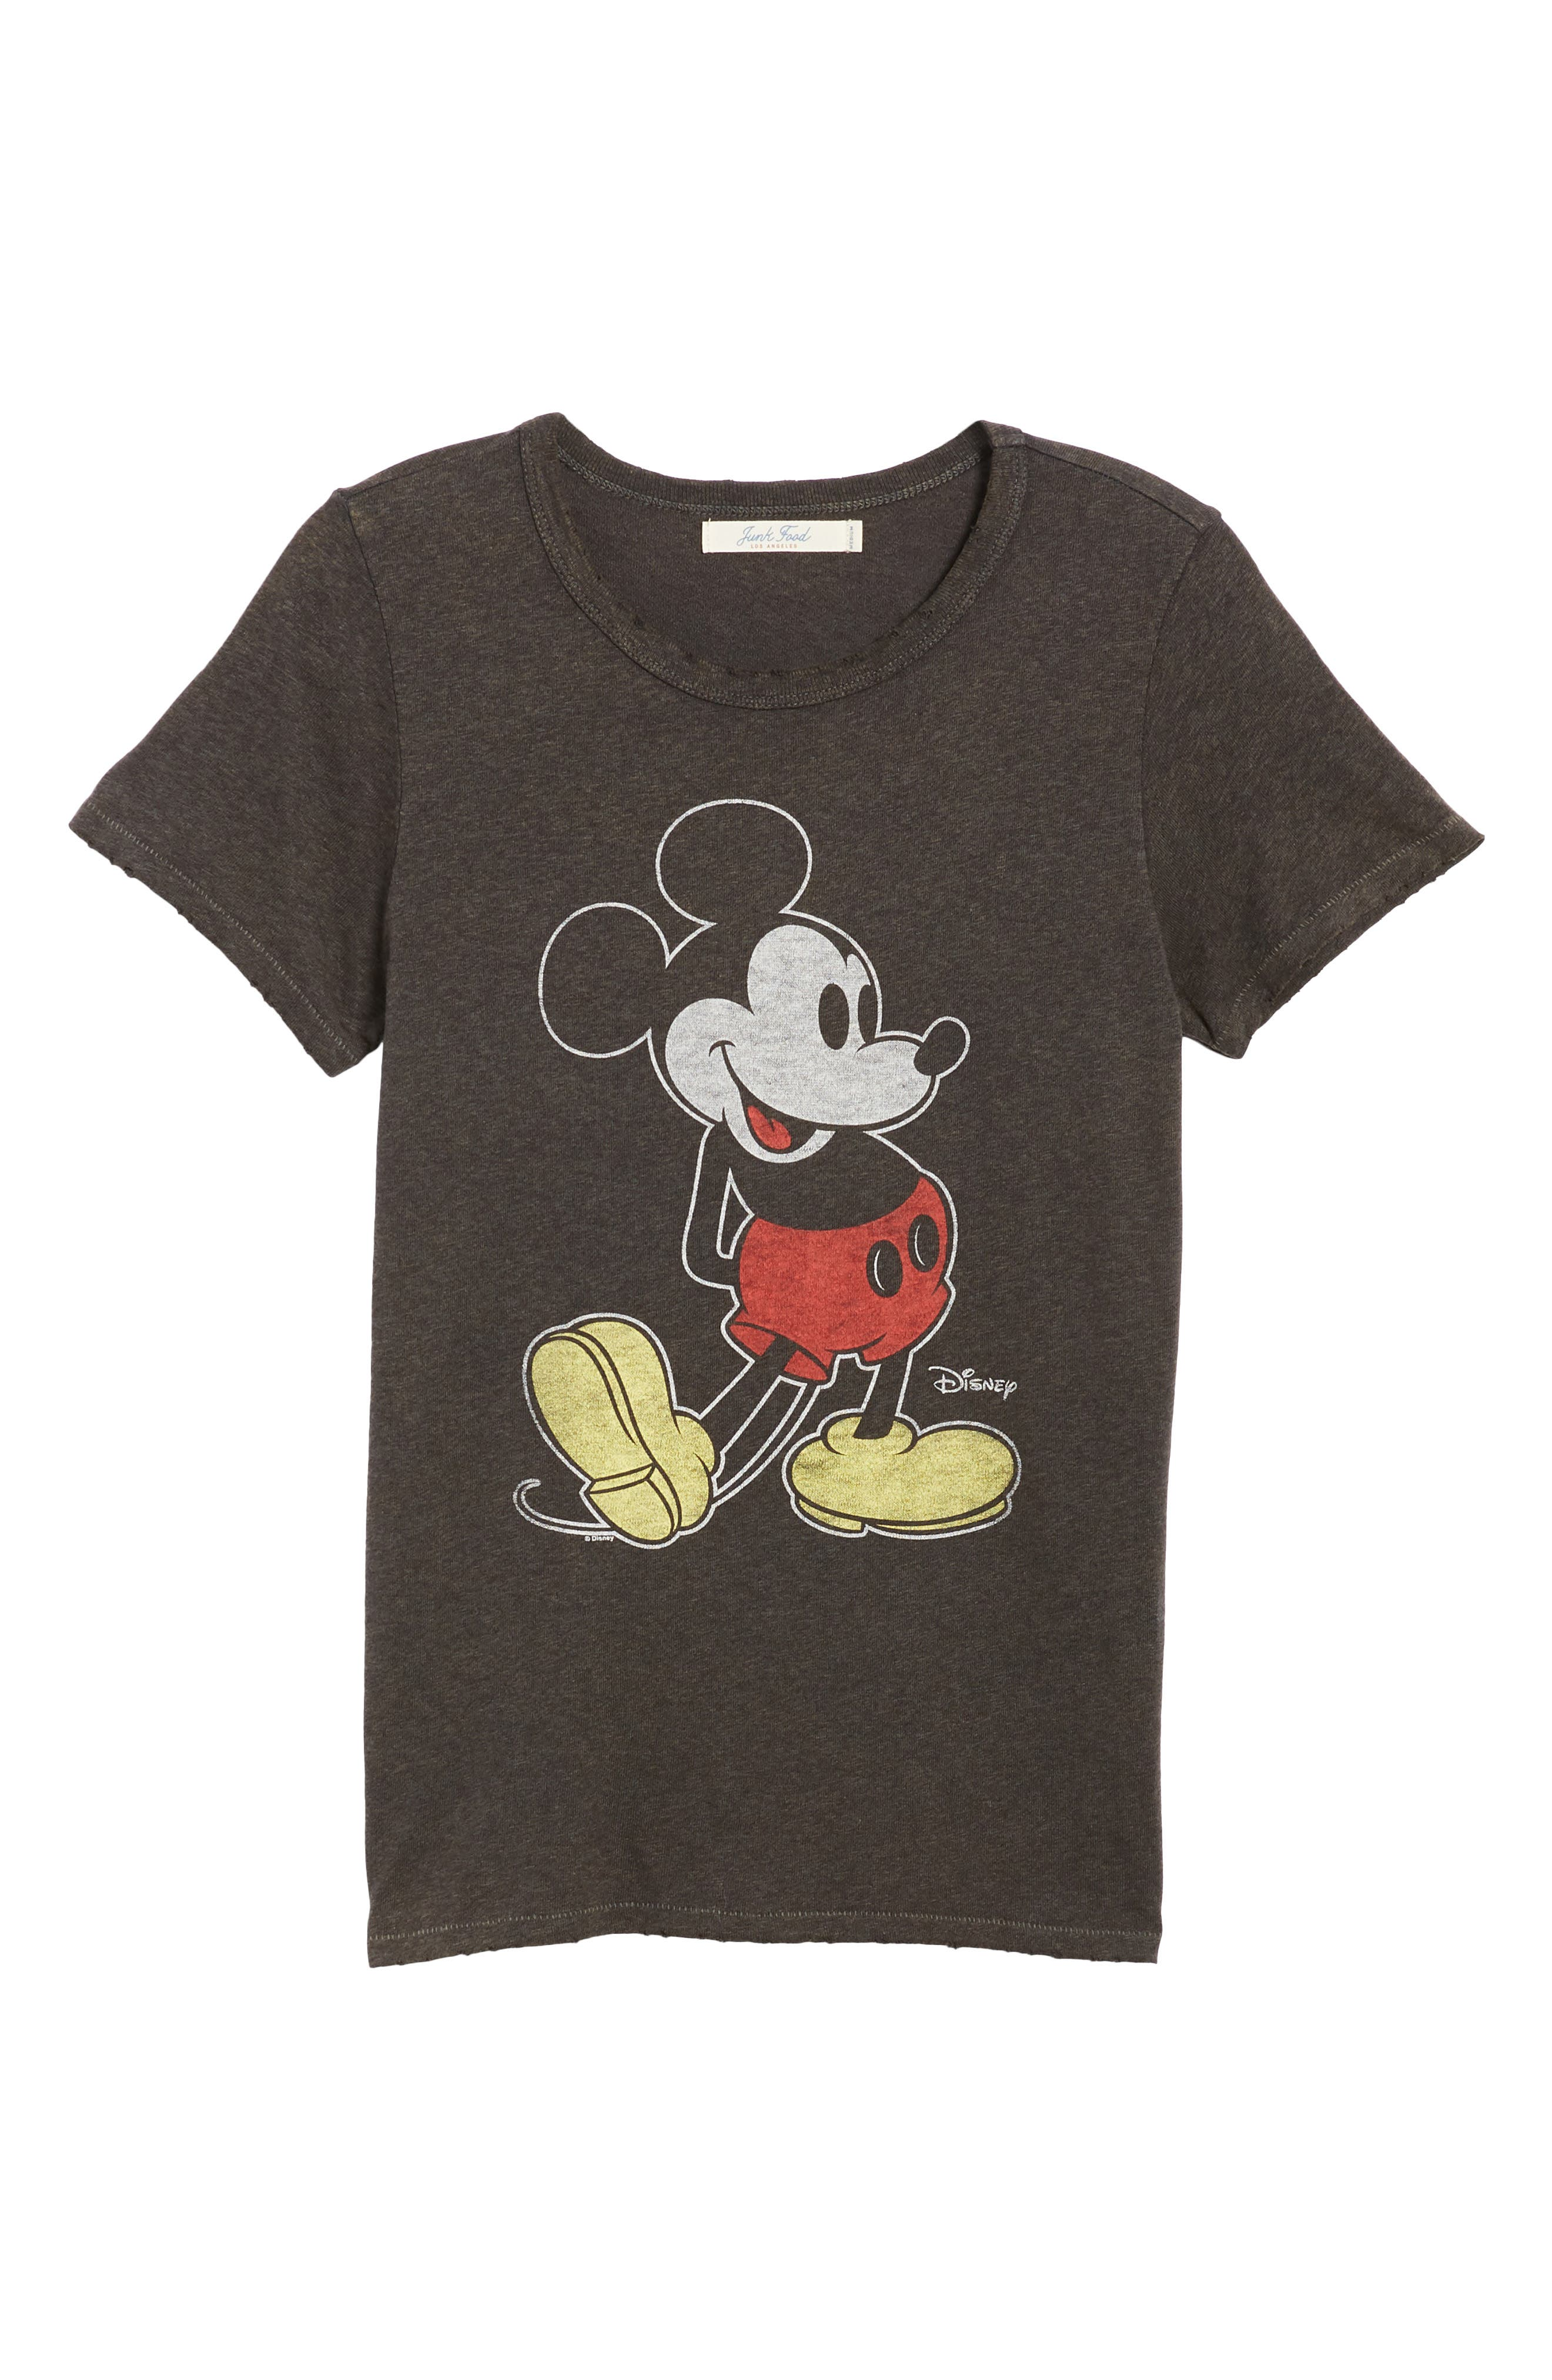 Disney<sup>®</sup> Mickey Mouse - Japan Tee,                             Alternate thumbnail 6, color,                             004